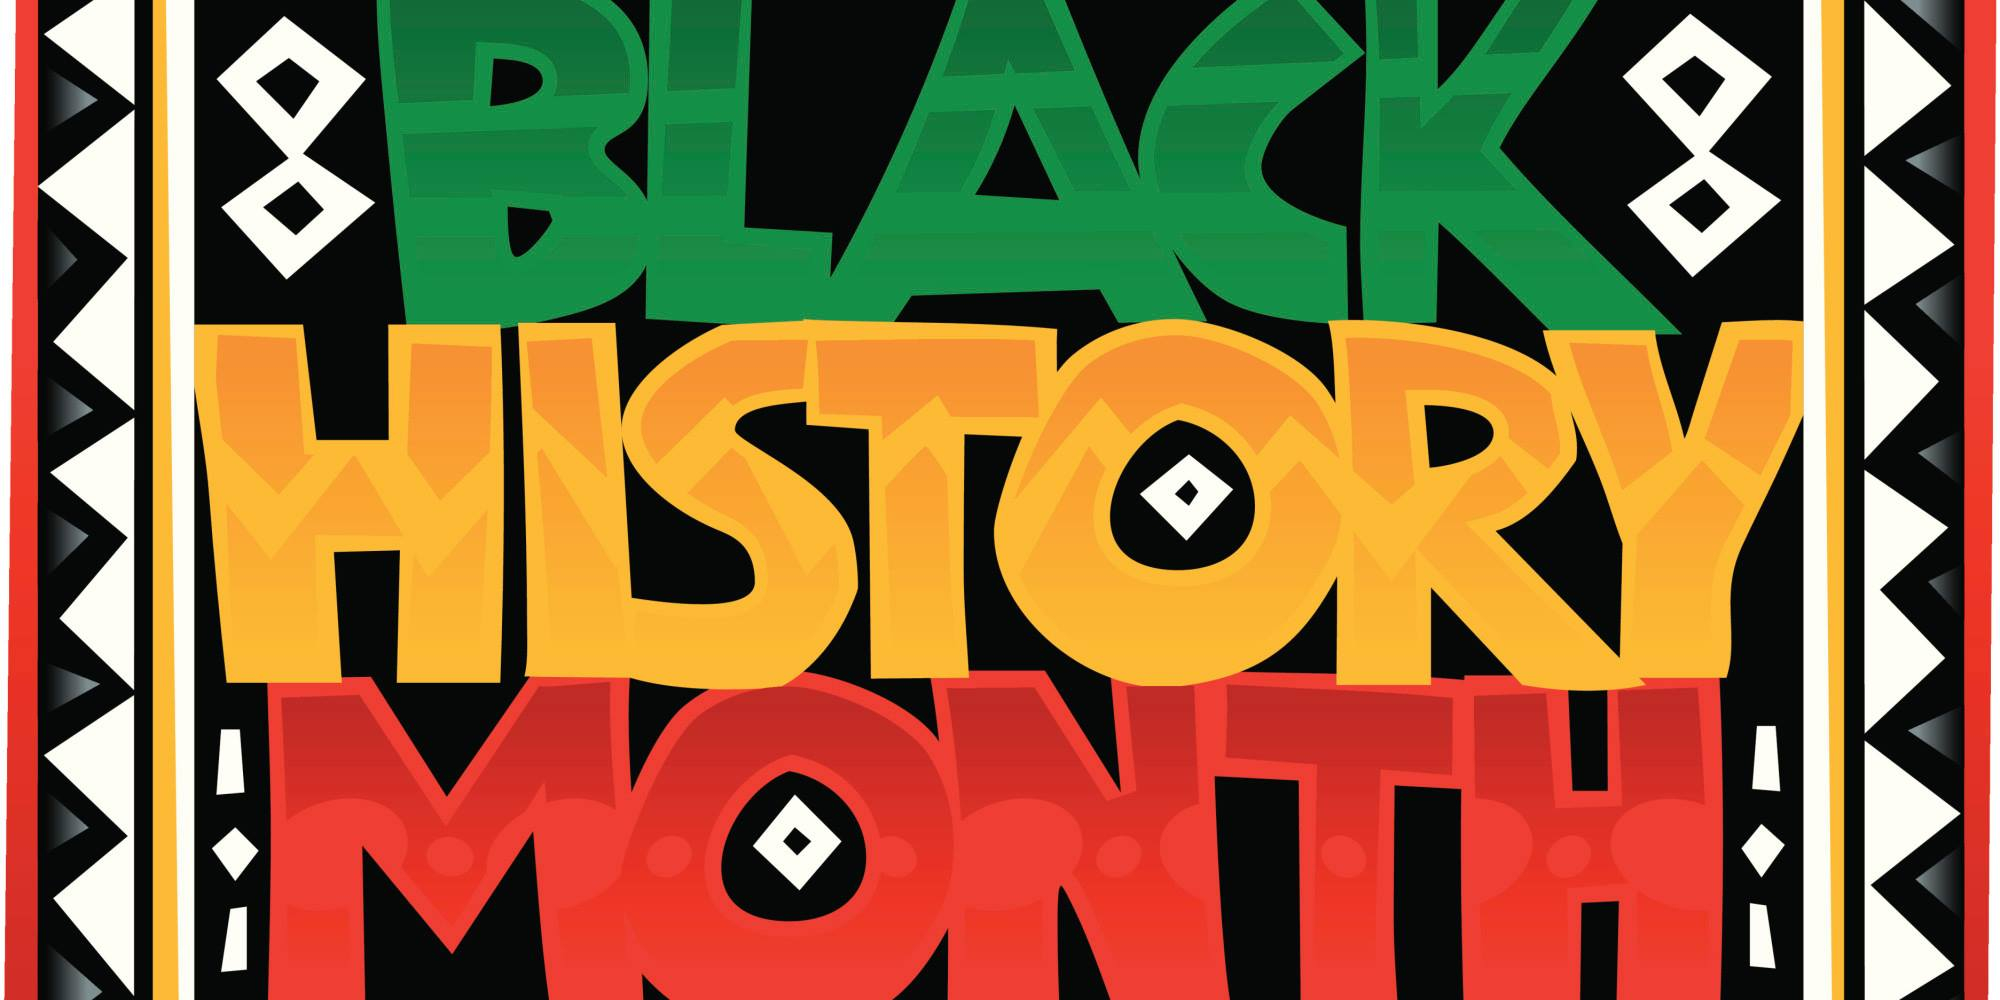 Black History Month Concert And Awards